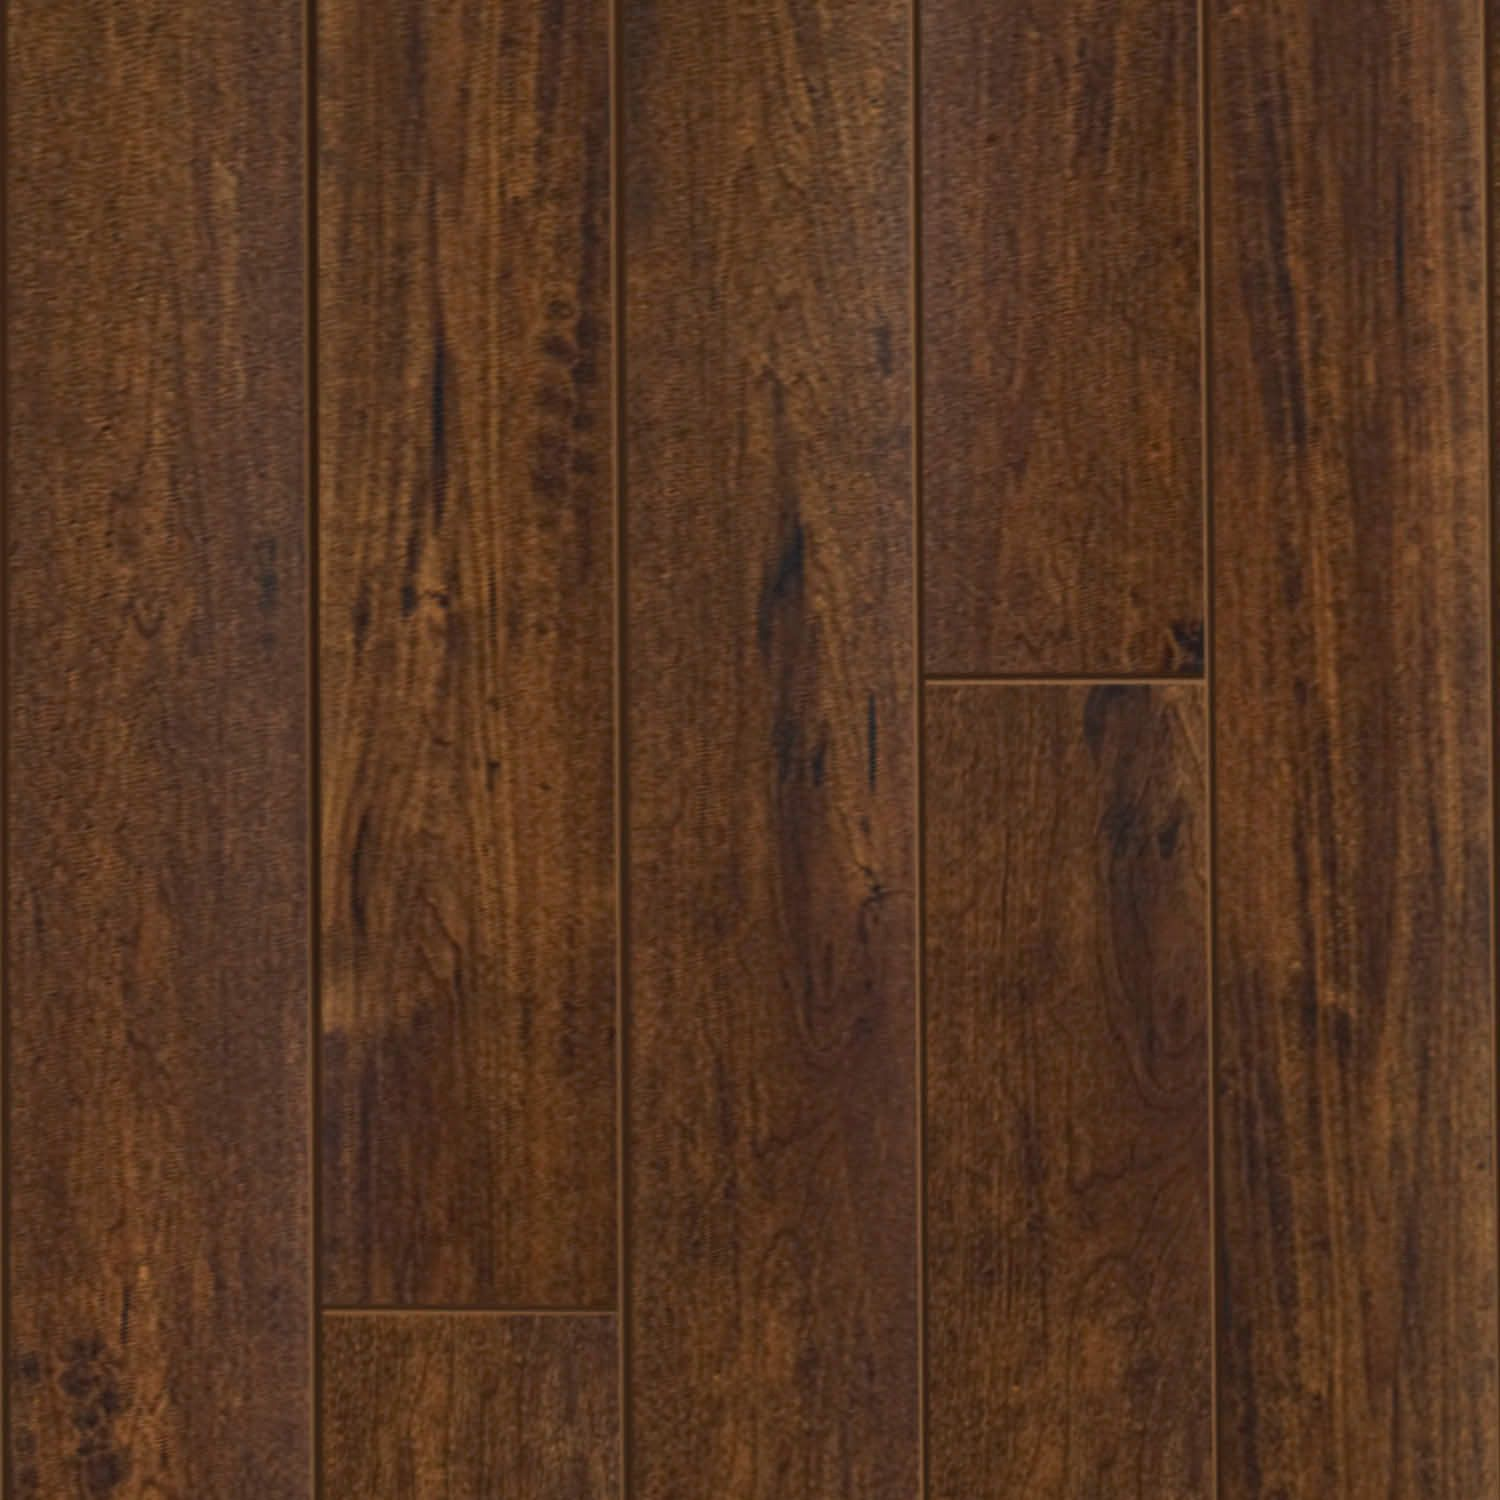 Select Surfaces Cocoa Walnut Laminate Flooring Various Order Sizes Available Walnut Laminate Flooring Flooring Hardwood